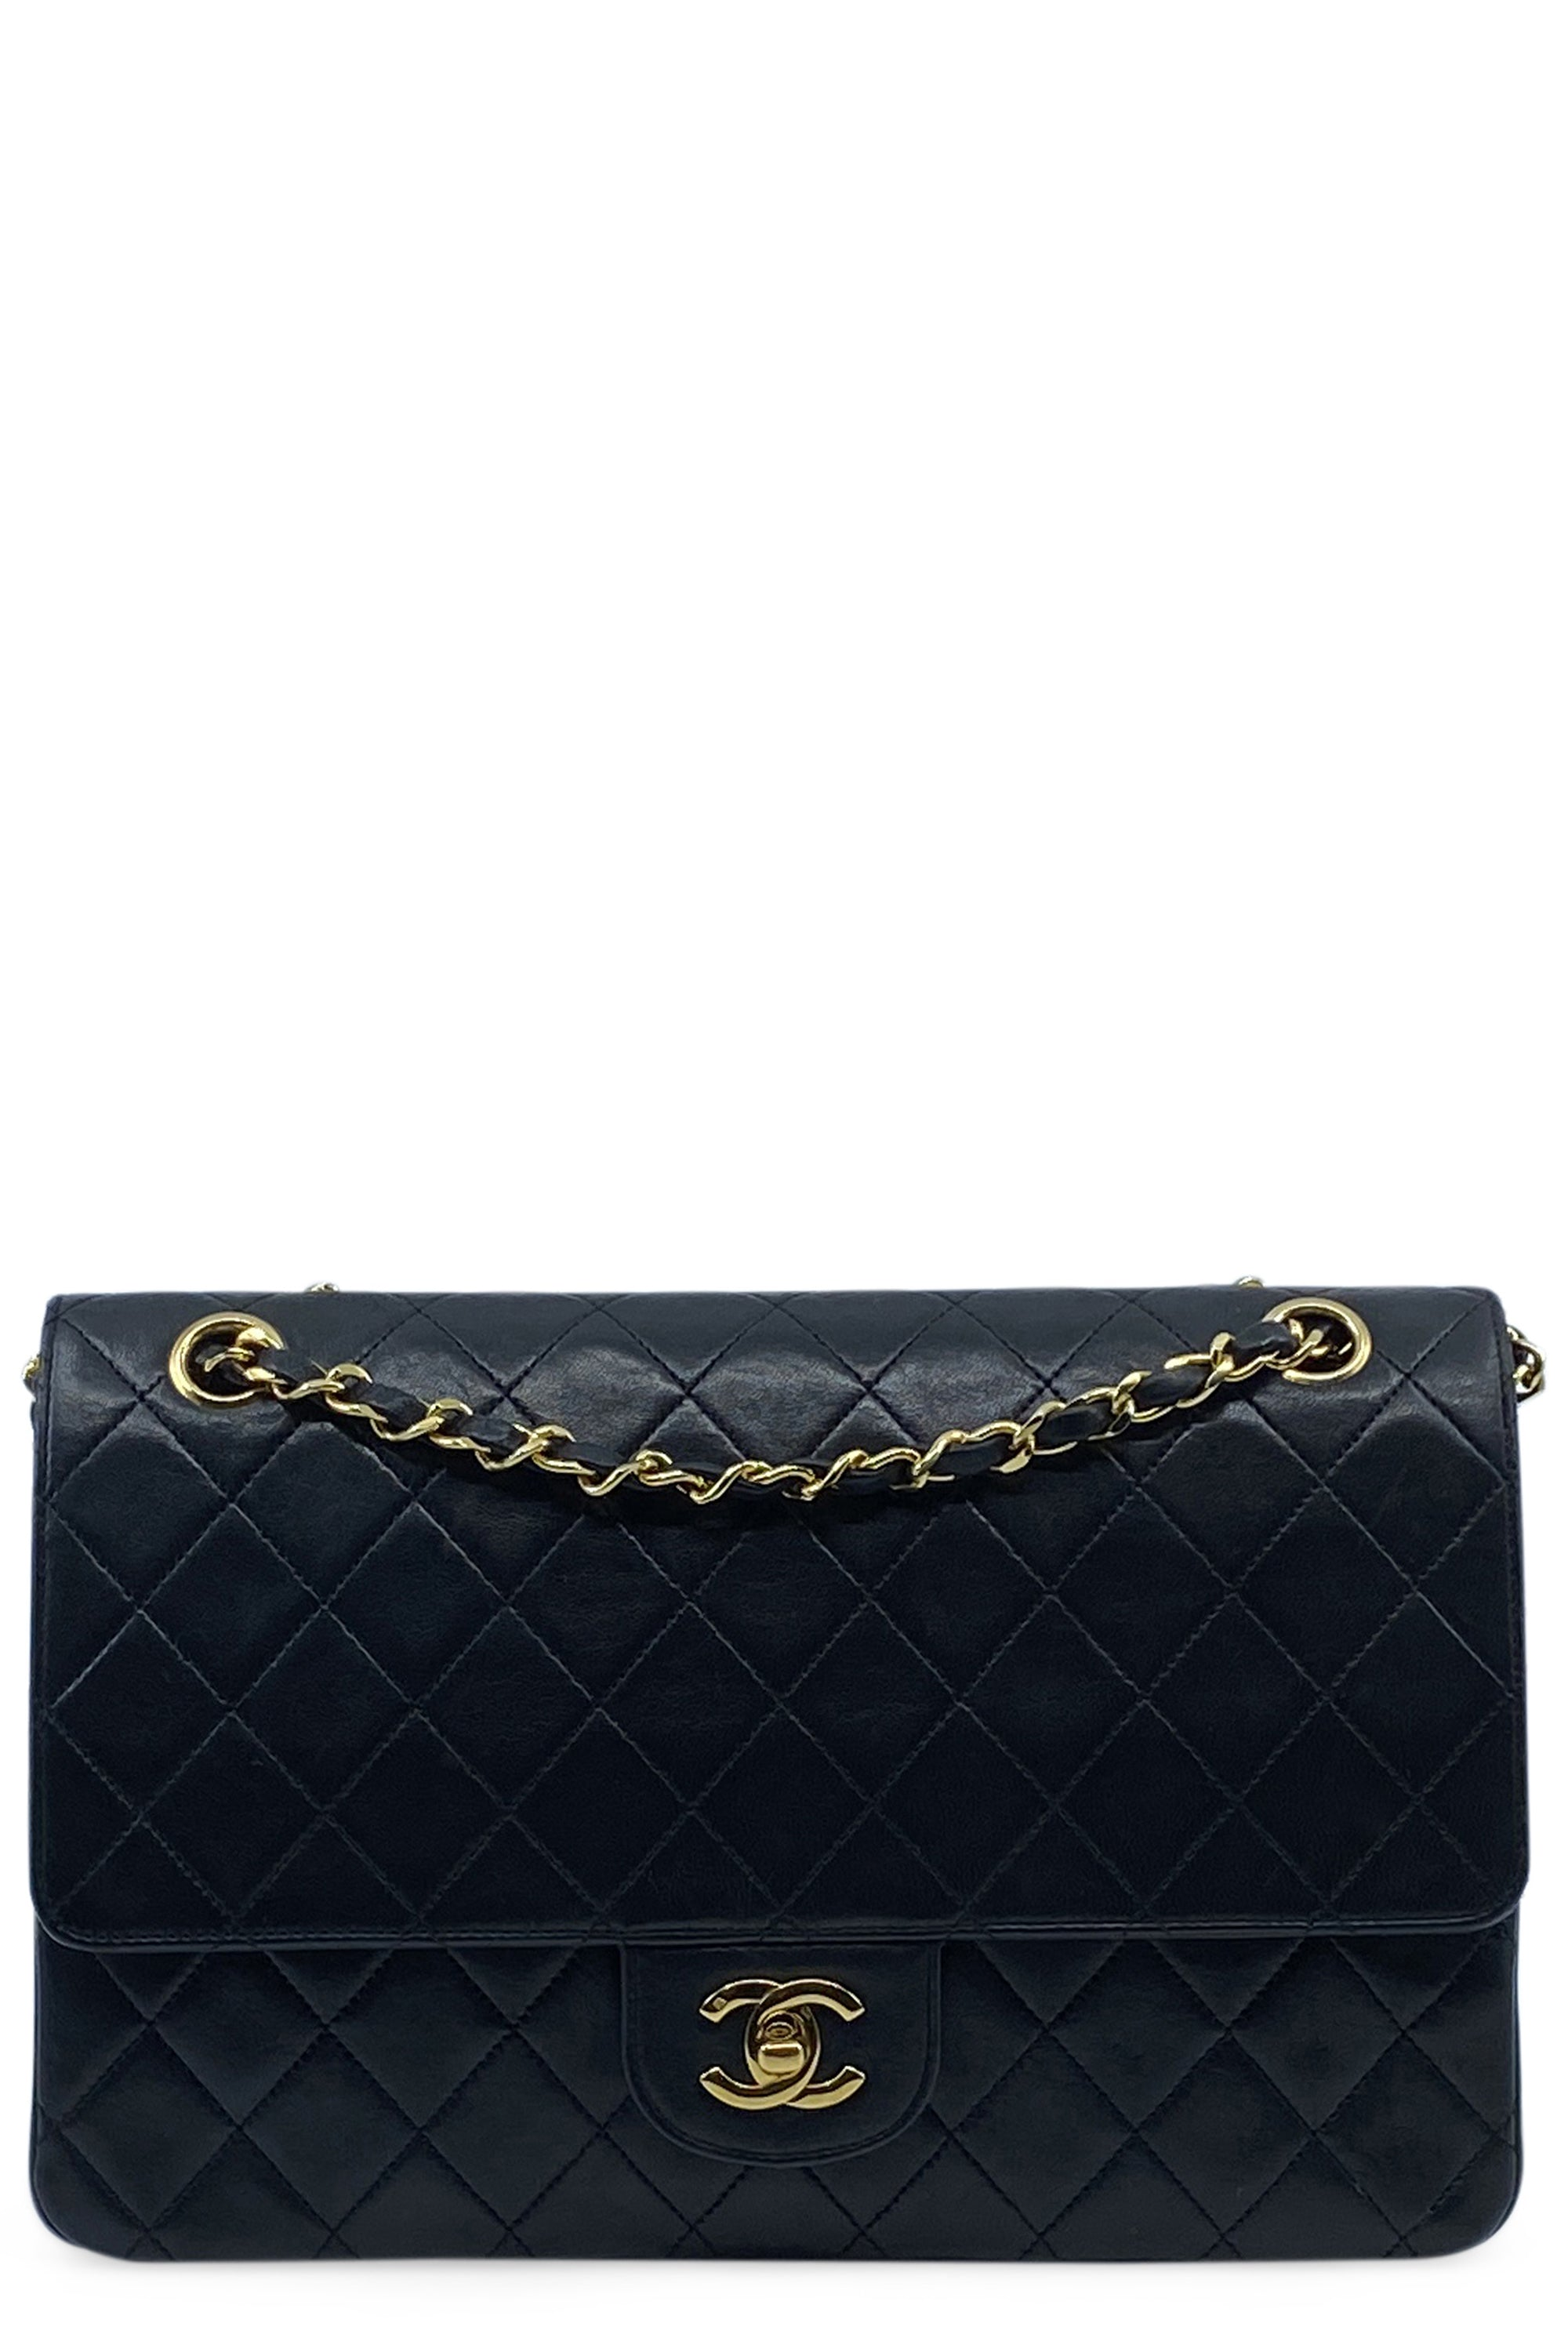 CHANEL Vintage Coco Black Medium Double Flap Bag Frontansicht